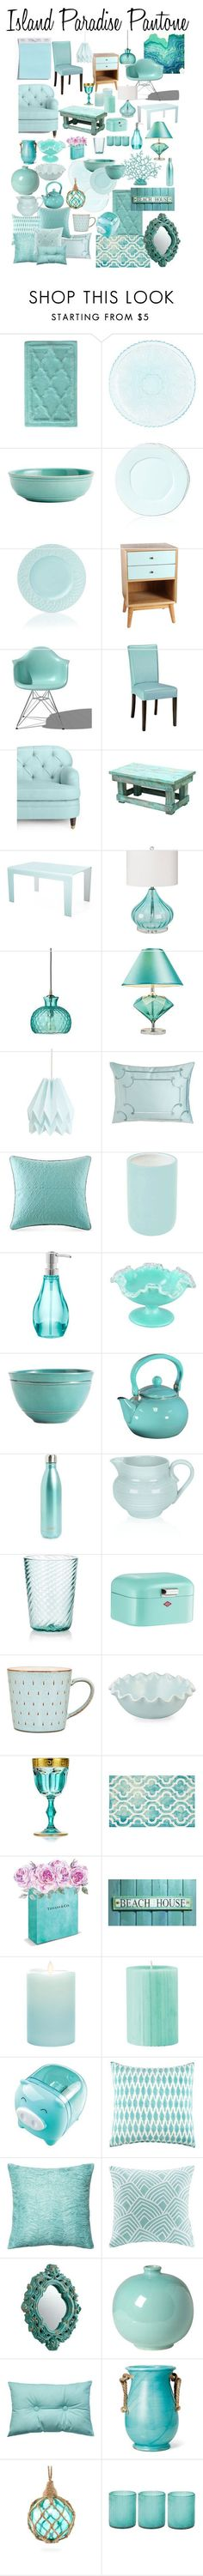 """Island Paradise Pantone Decor"" by teciane-ro ❤️ liked on Polyvore featuring Jessica Simpson, Pier 1 Imports, Pottery Barn, Vietri, Lenox, Antique Revival, Herman Miller, Home Decorators Collection, Kate Spade and Sovet Italia"